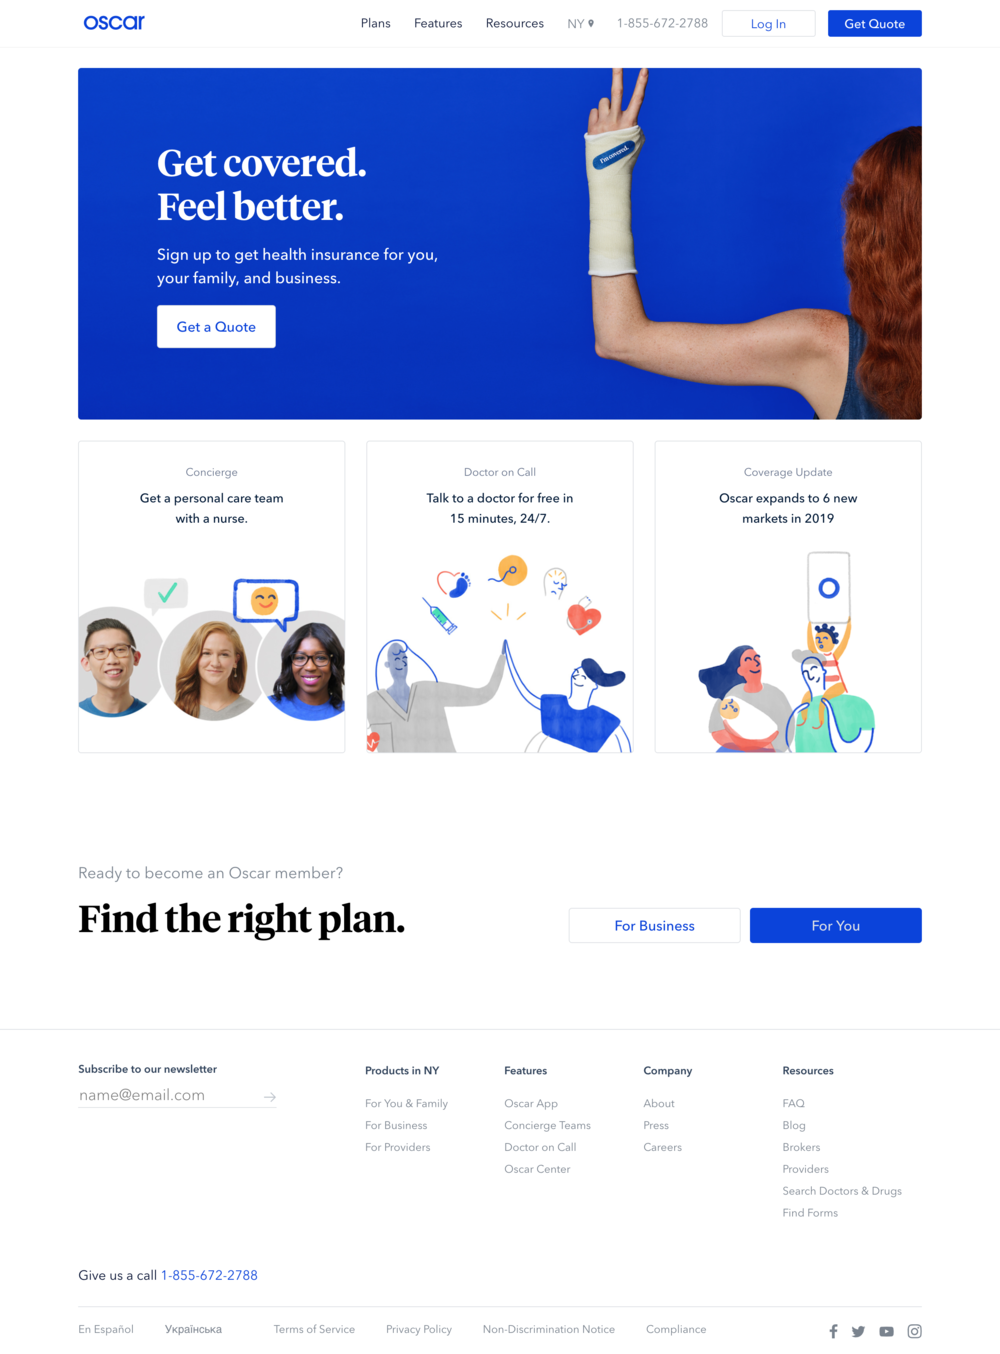 Oscar - Private healthcare insurer. Utilizes a more transparent business model re: coverage and billing. Offers members less barrier to access physician care with on-call system.